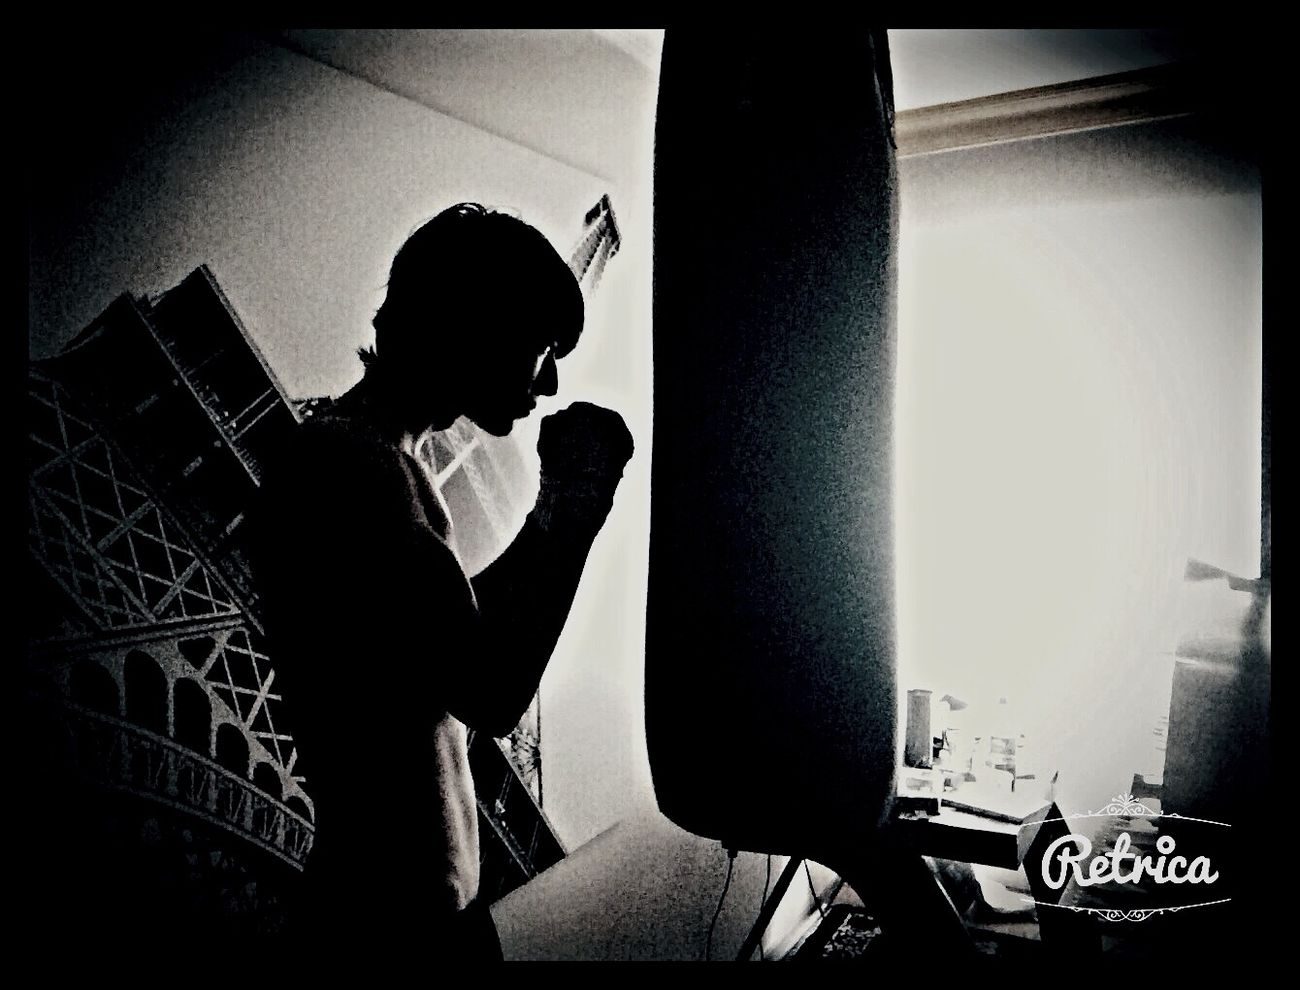 Blackandwhite Training Boxer Punchingbag Room Home Working Hard Monochrome